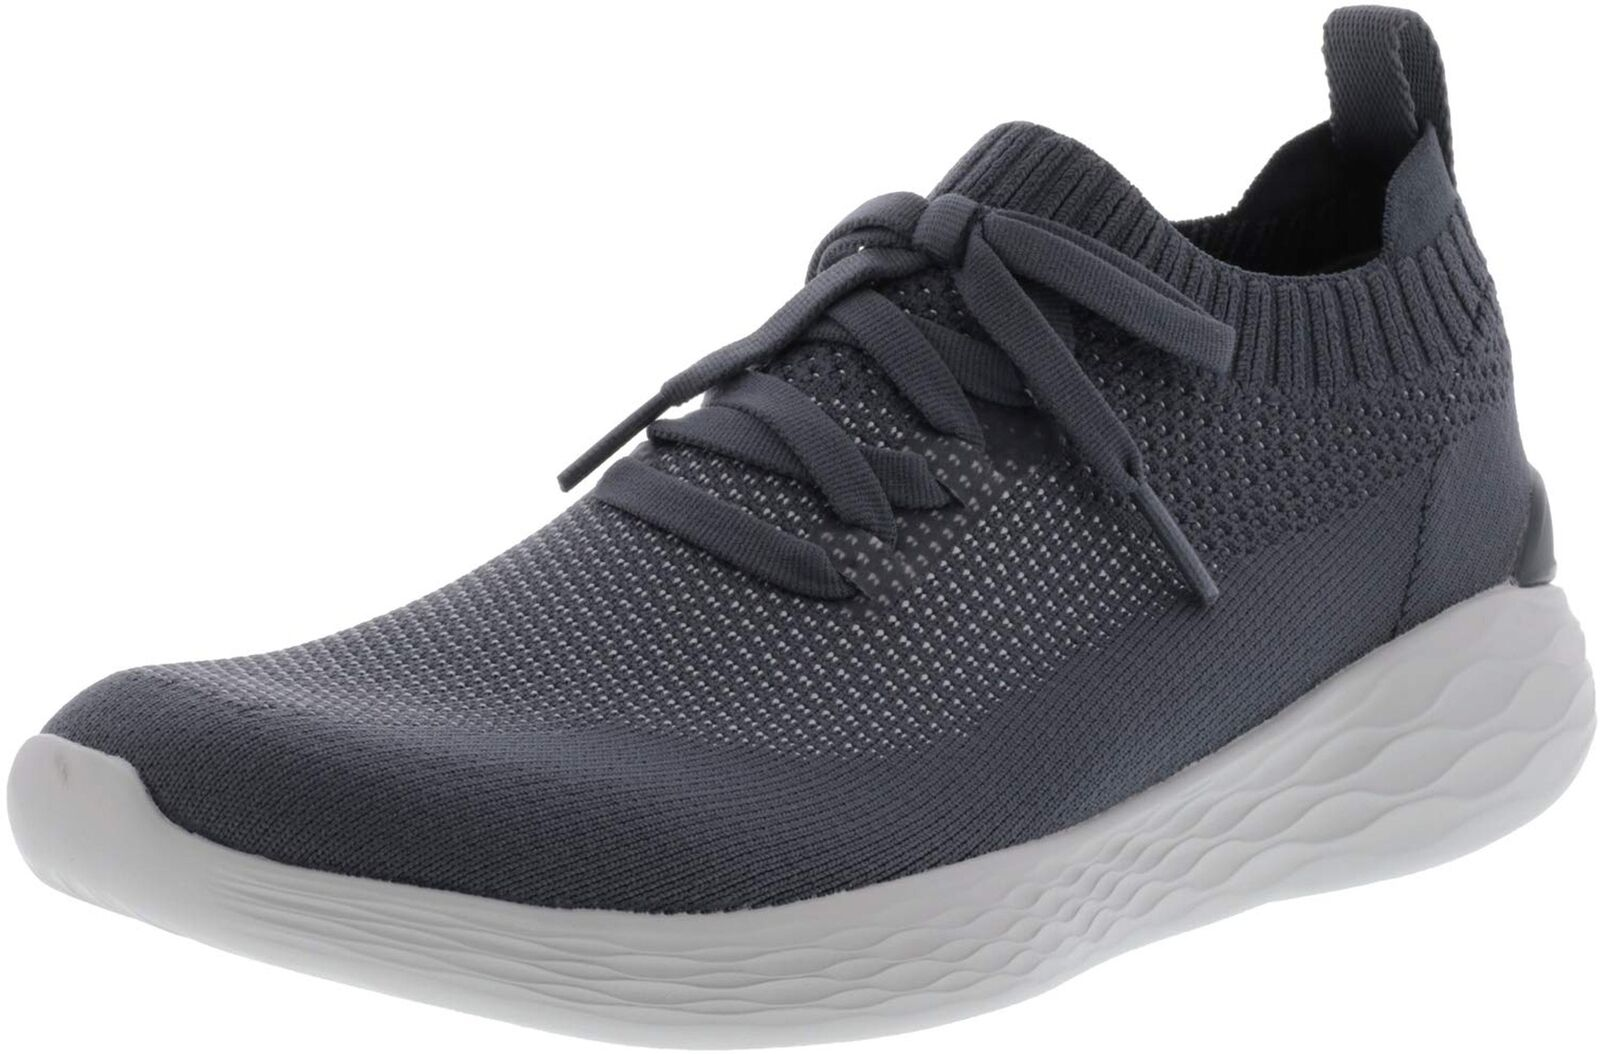 Skechers 54210 Men's Altitude Gostrike shoes, Charcoal - 7.5 D(M) US